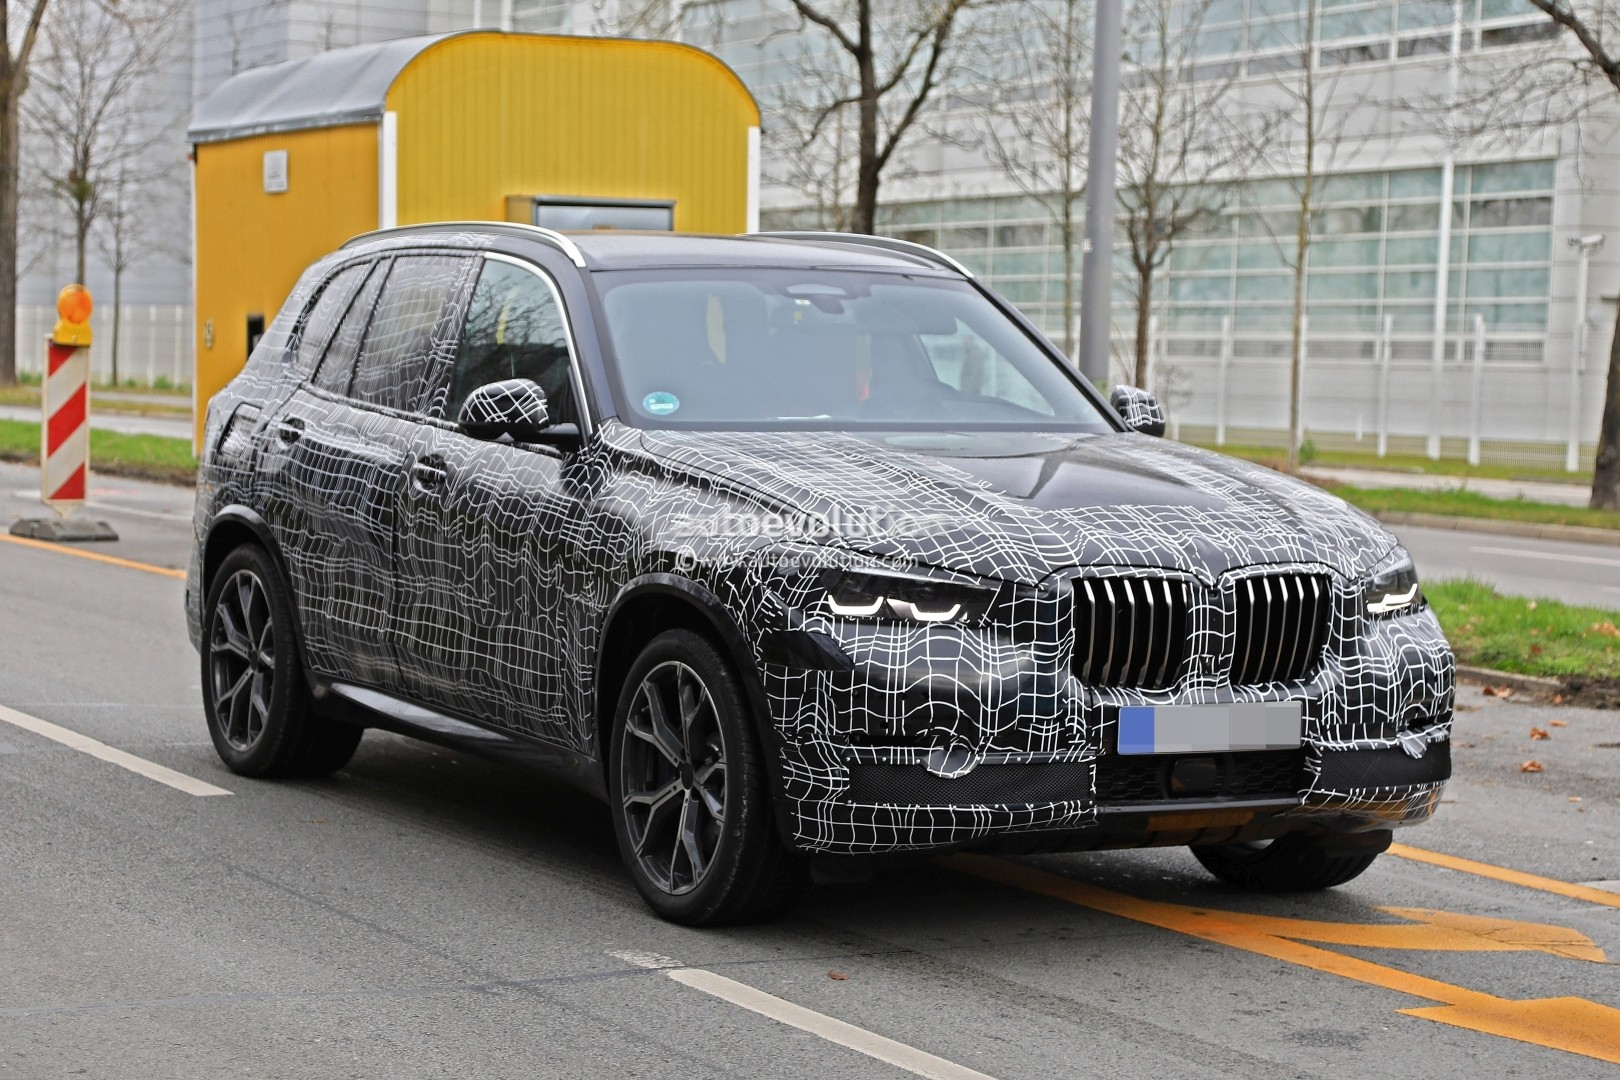 2019 bmw x5 spied in germany shows sporty stance autoevolution. Black Bedroom Furniture Sets. Home Design Ideas